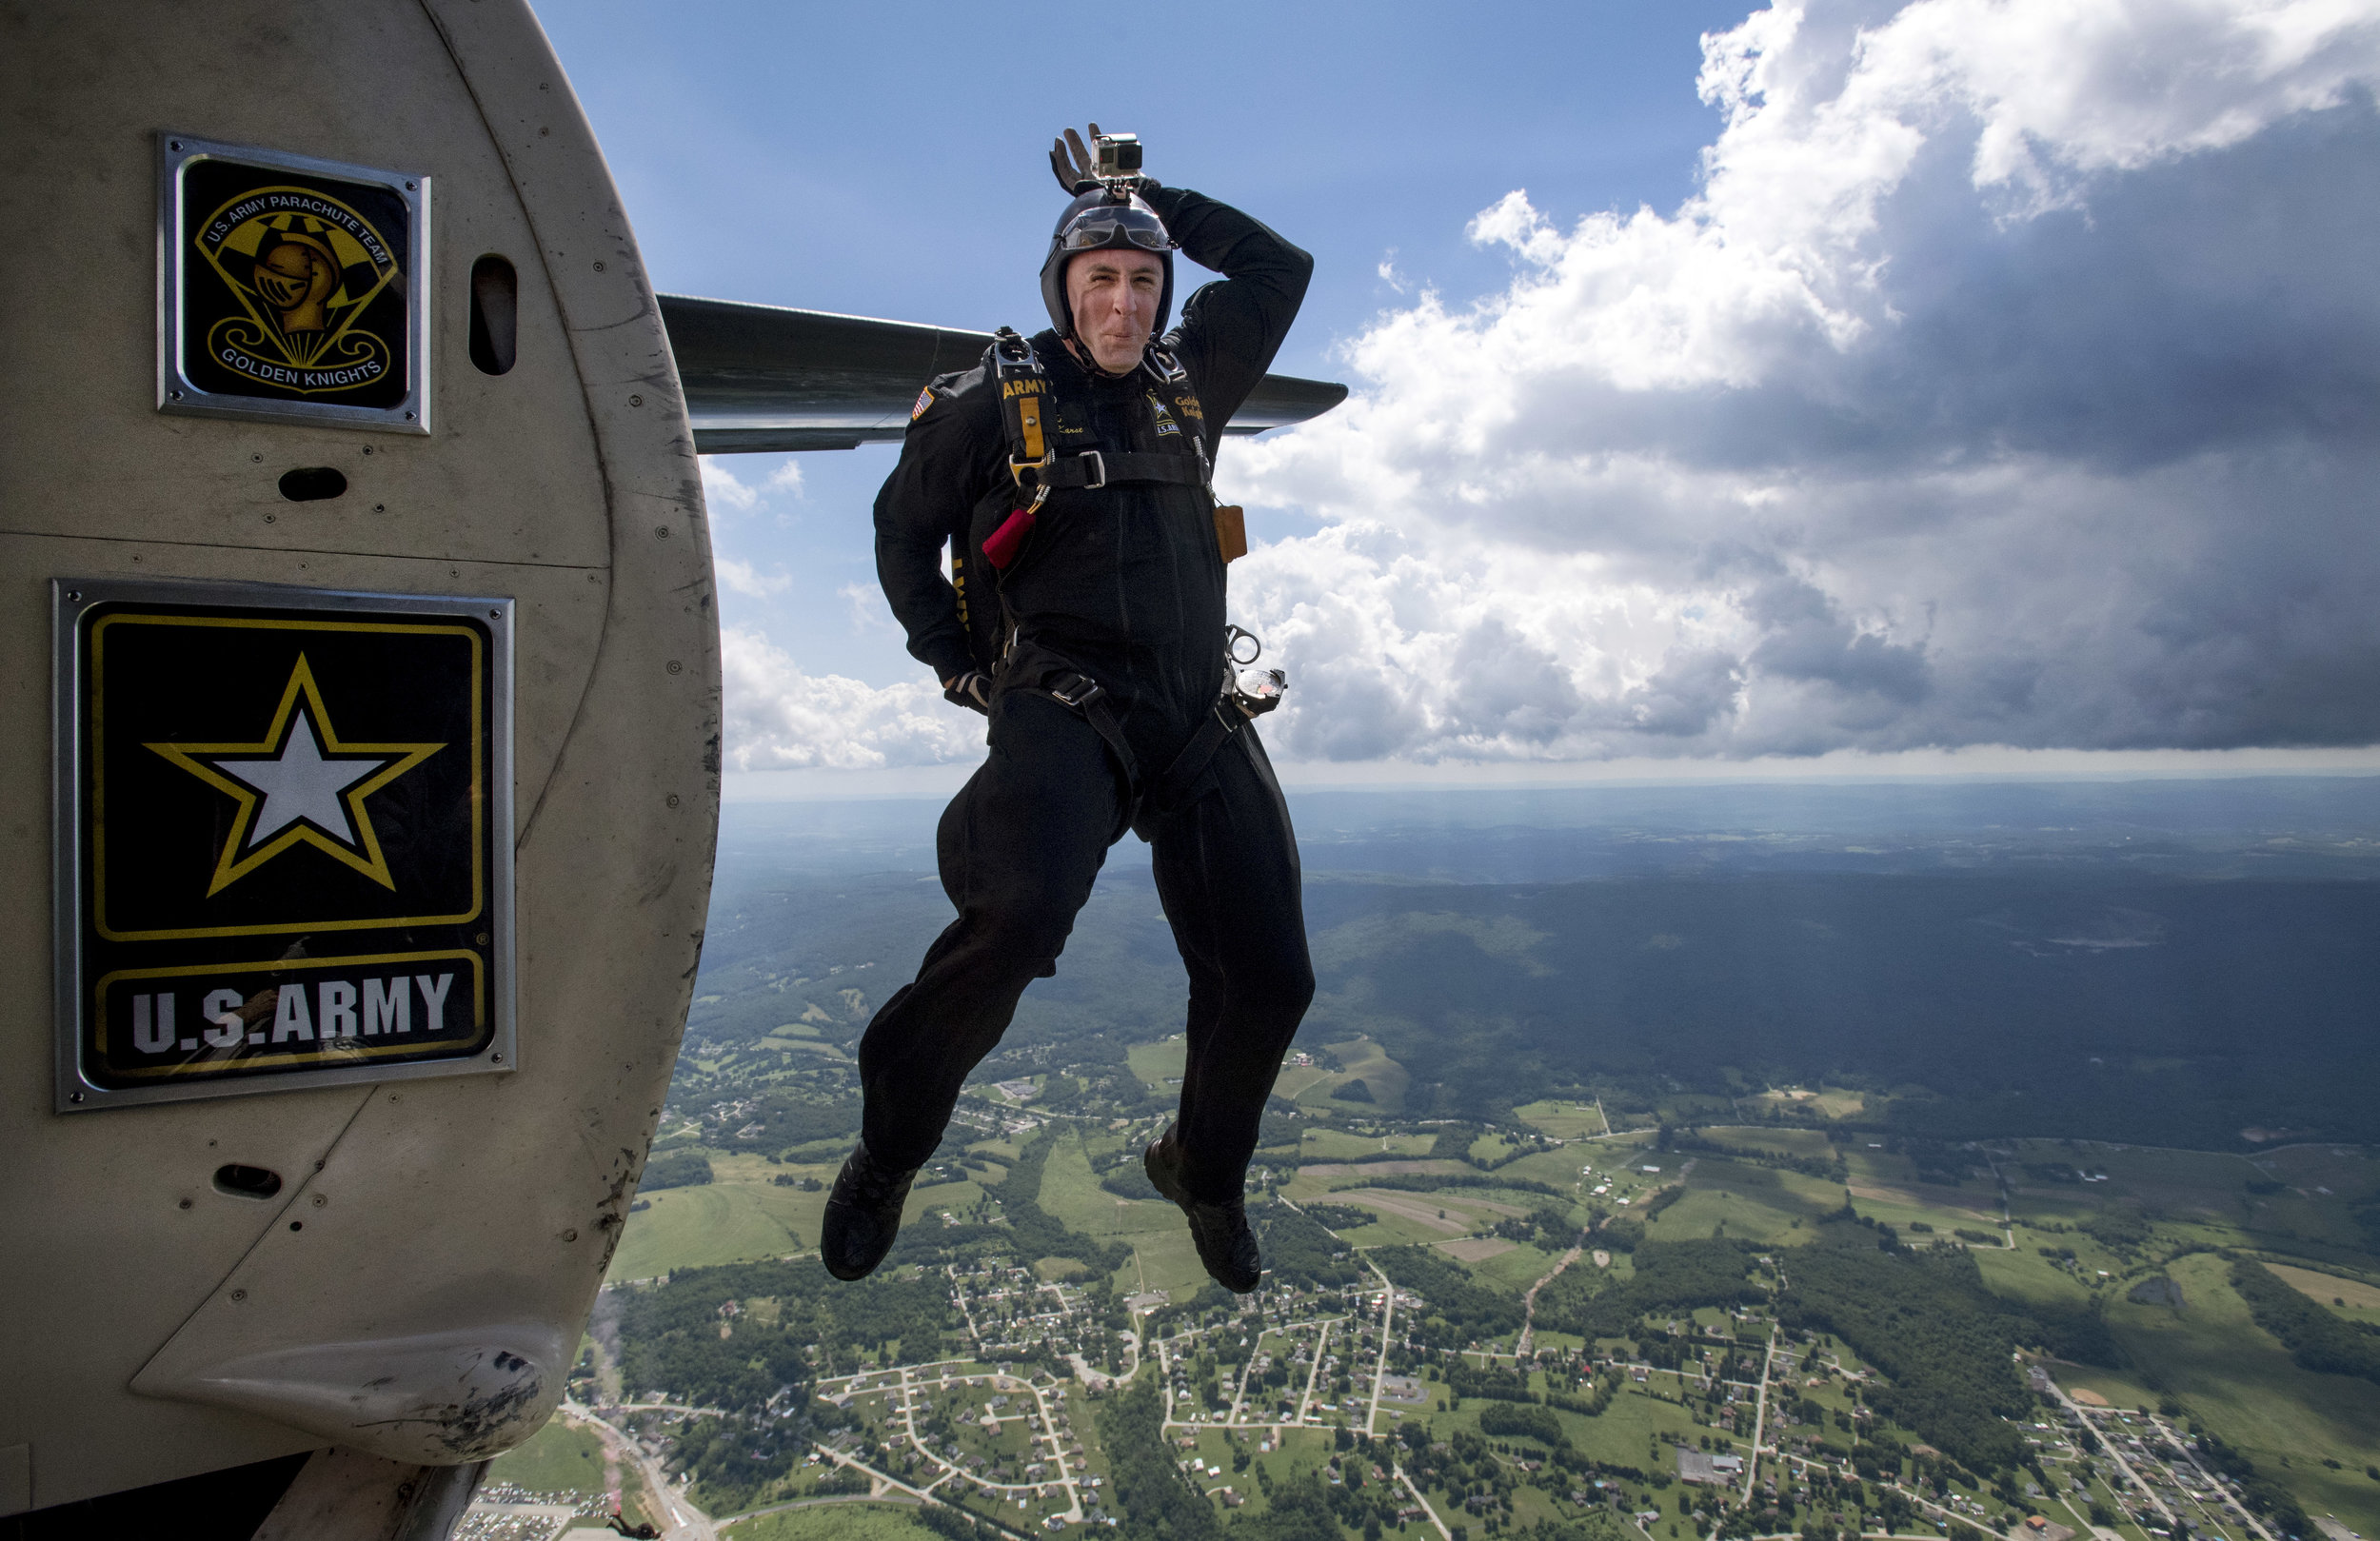 Sgt. 1st Class Brian Karst, of the United States Army Parachute Team Golden Knights and of Vancouver, Washington, protects his head as he leaps out of an airplane during the Shop 'n Save Westmoreland County Airshow on Sunday, June 25, 2017 at Arnold Palmer Regional Airport in Unity. (Steph Chambers/Post-Gazette)